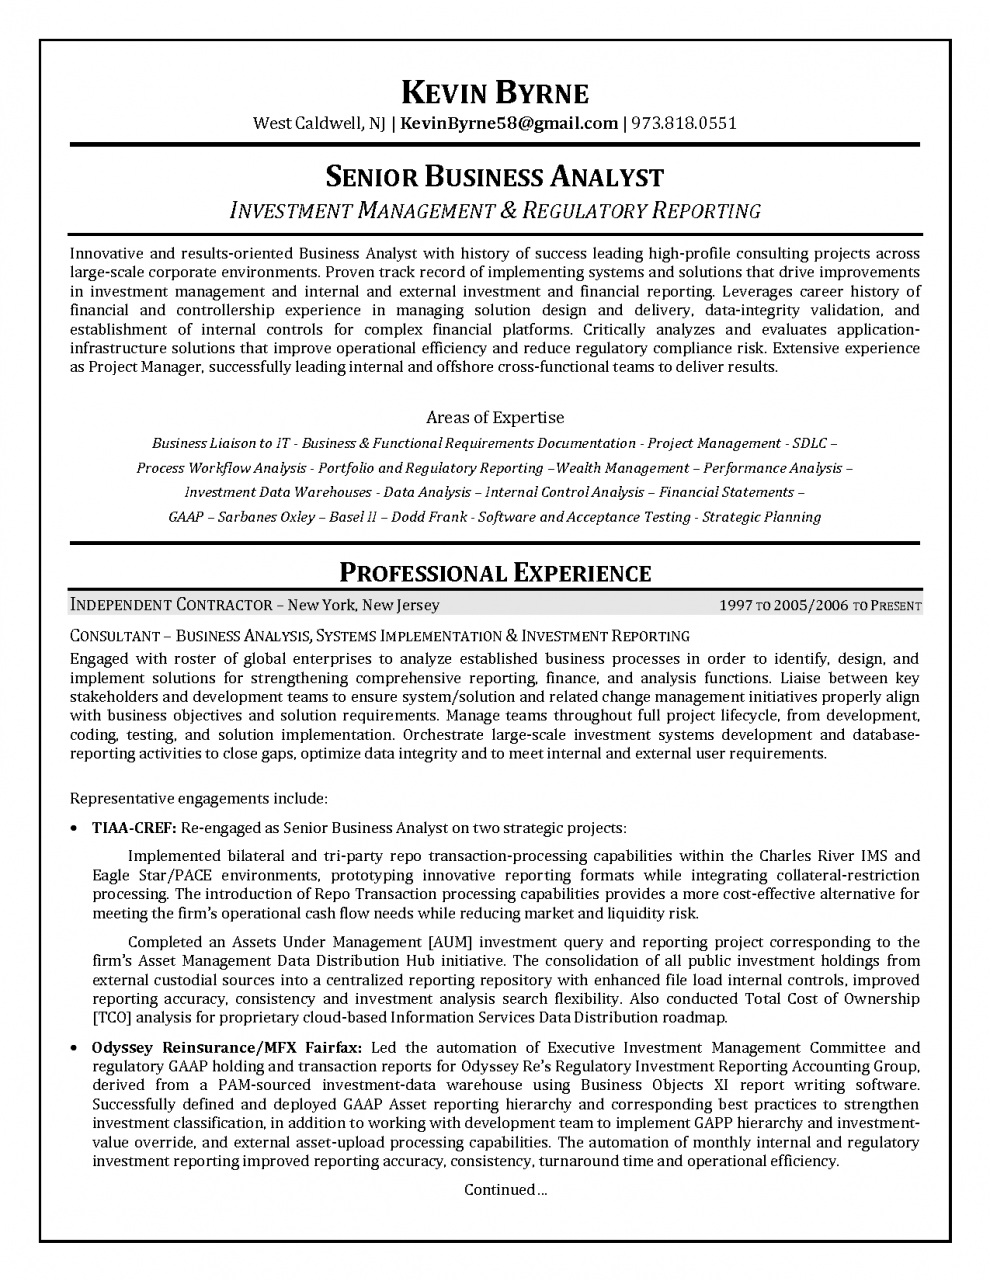 Business Analyst Resume Inspiration Resumesenior Business Analyst Resume Format Business Analyst